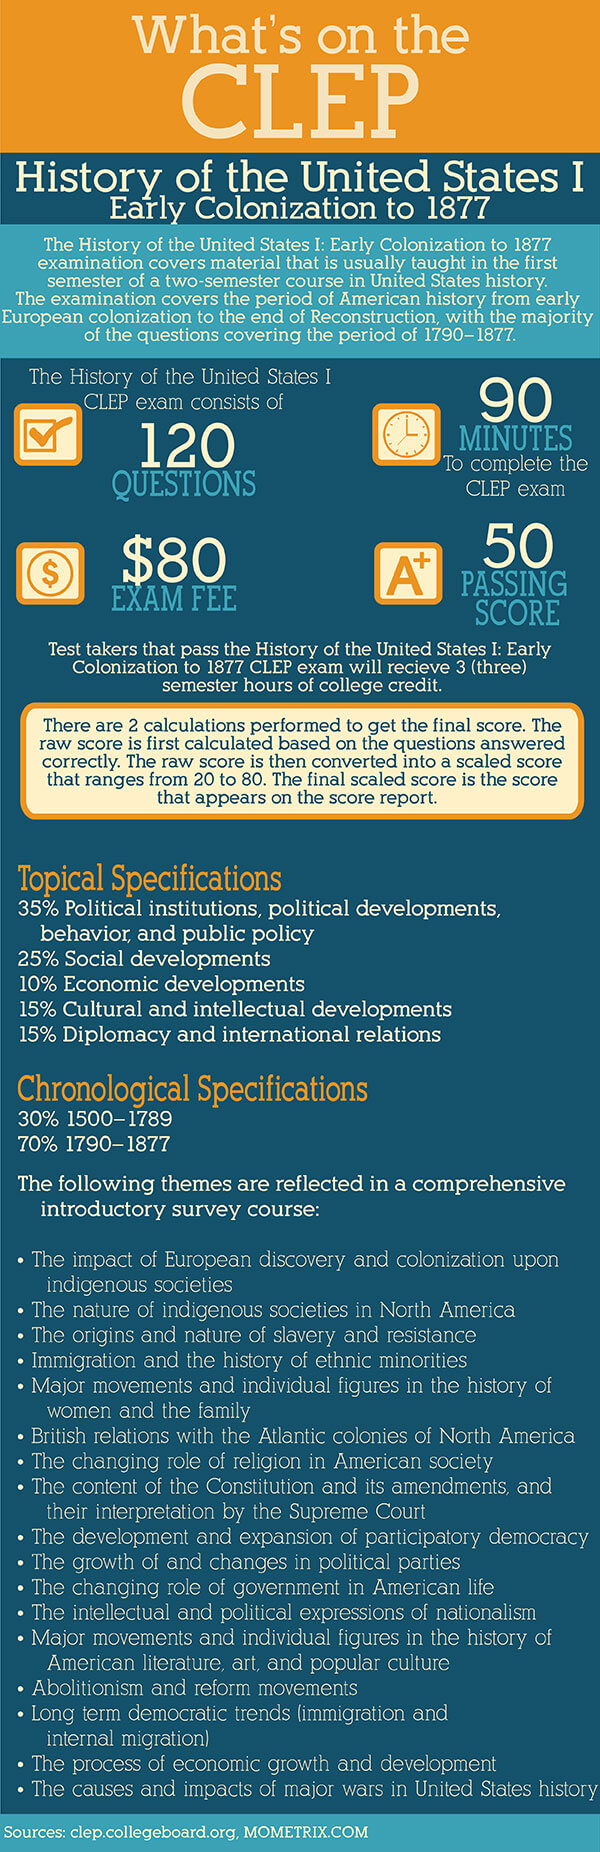 Infographic explaining History of the United States 1 CLEP test